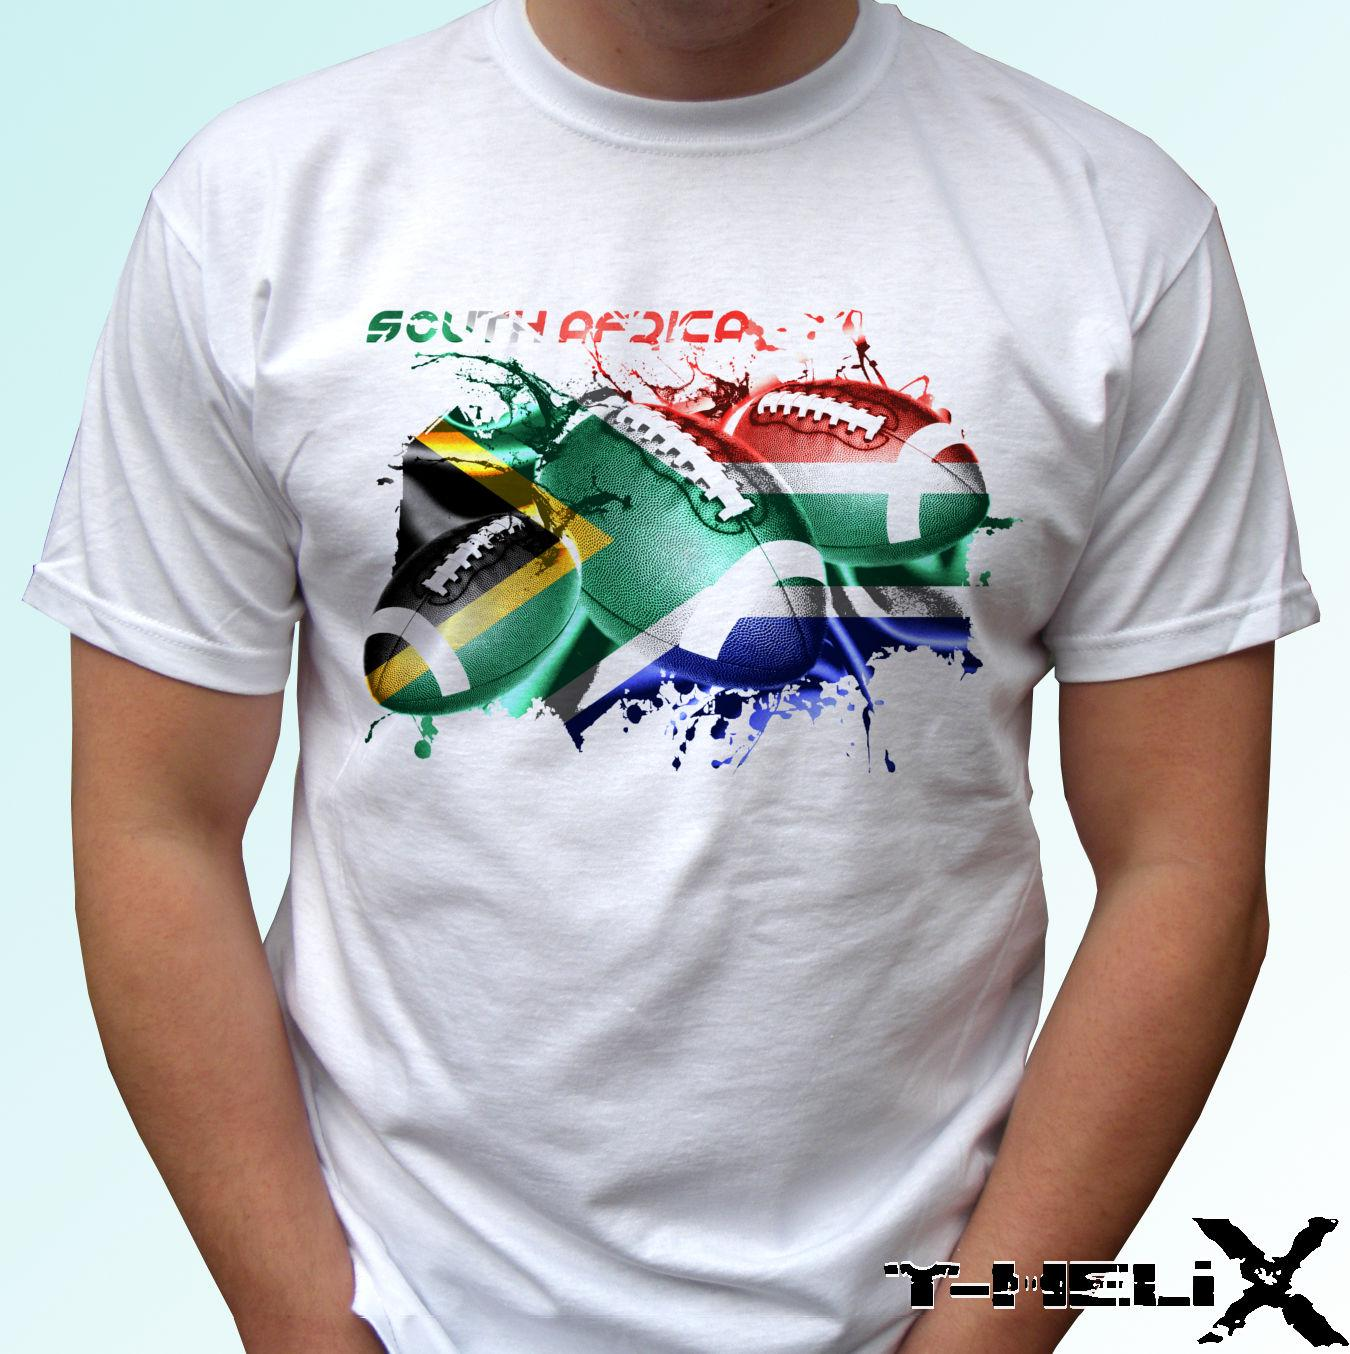 be059cef South Africa Rugby Flag White T Shirt Top Tee Football Design Mens, Kids  Sizes Funny Unisex Casual Tshirt Top Mens T Shirts Funny Shirts From  Thetoynation, ...